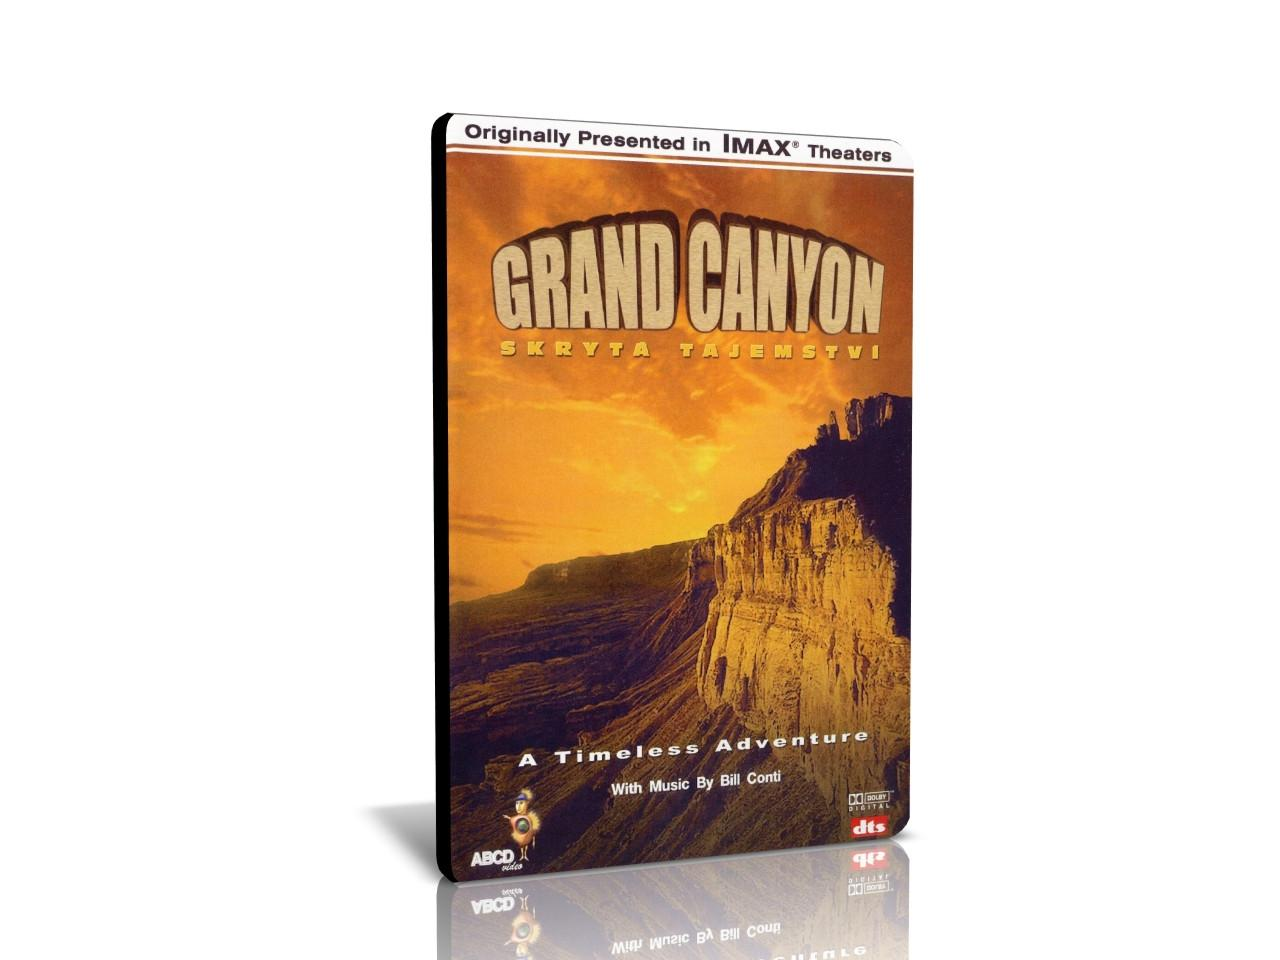 IMAX: Grand Canyon (DVD)